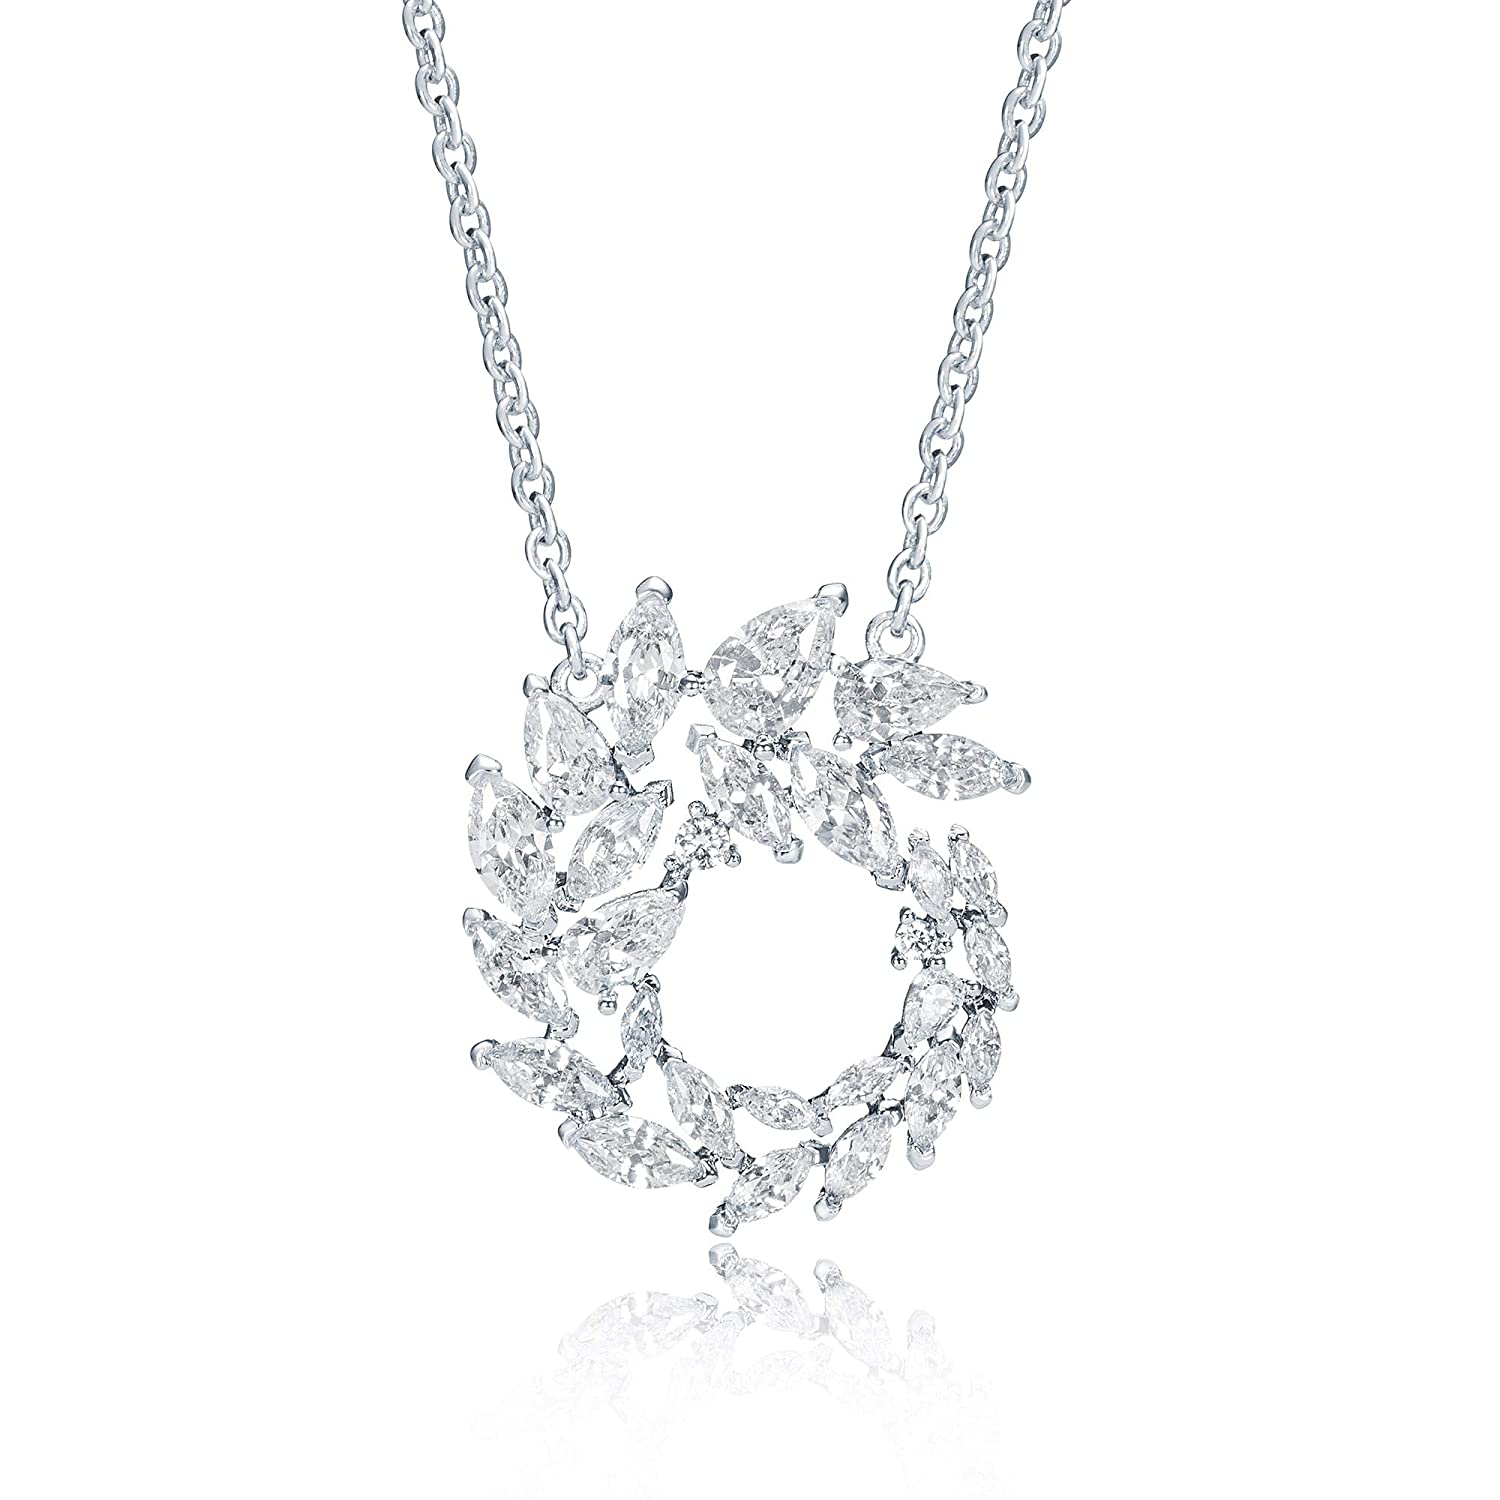 My Jewellery Story MYJS Louison Spiral Necklace with CZ Rhodium Plated